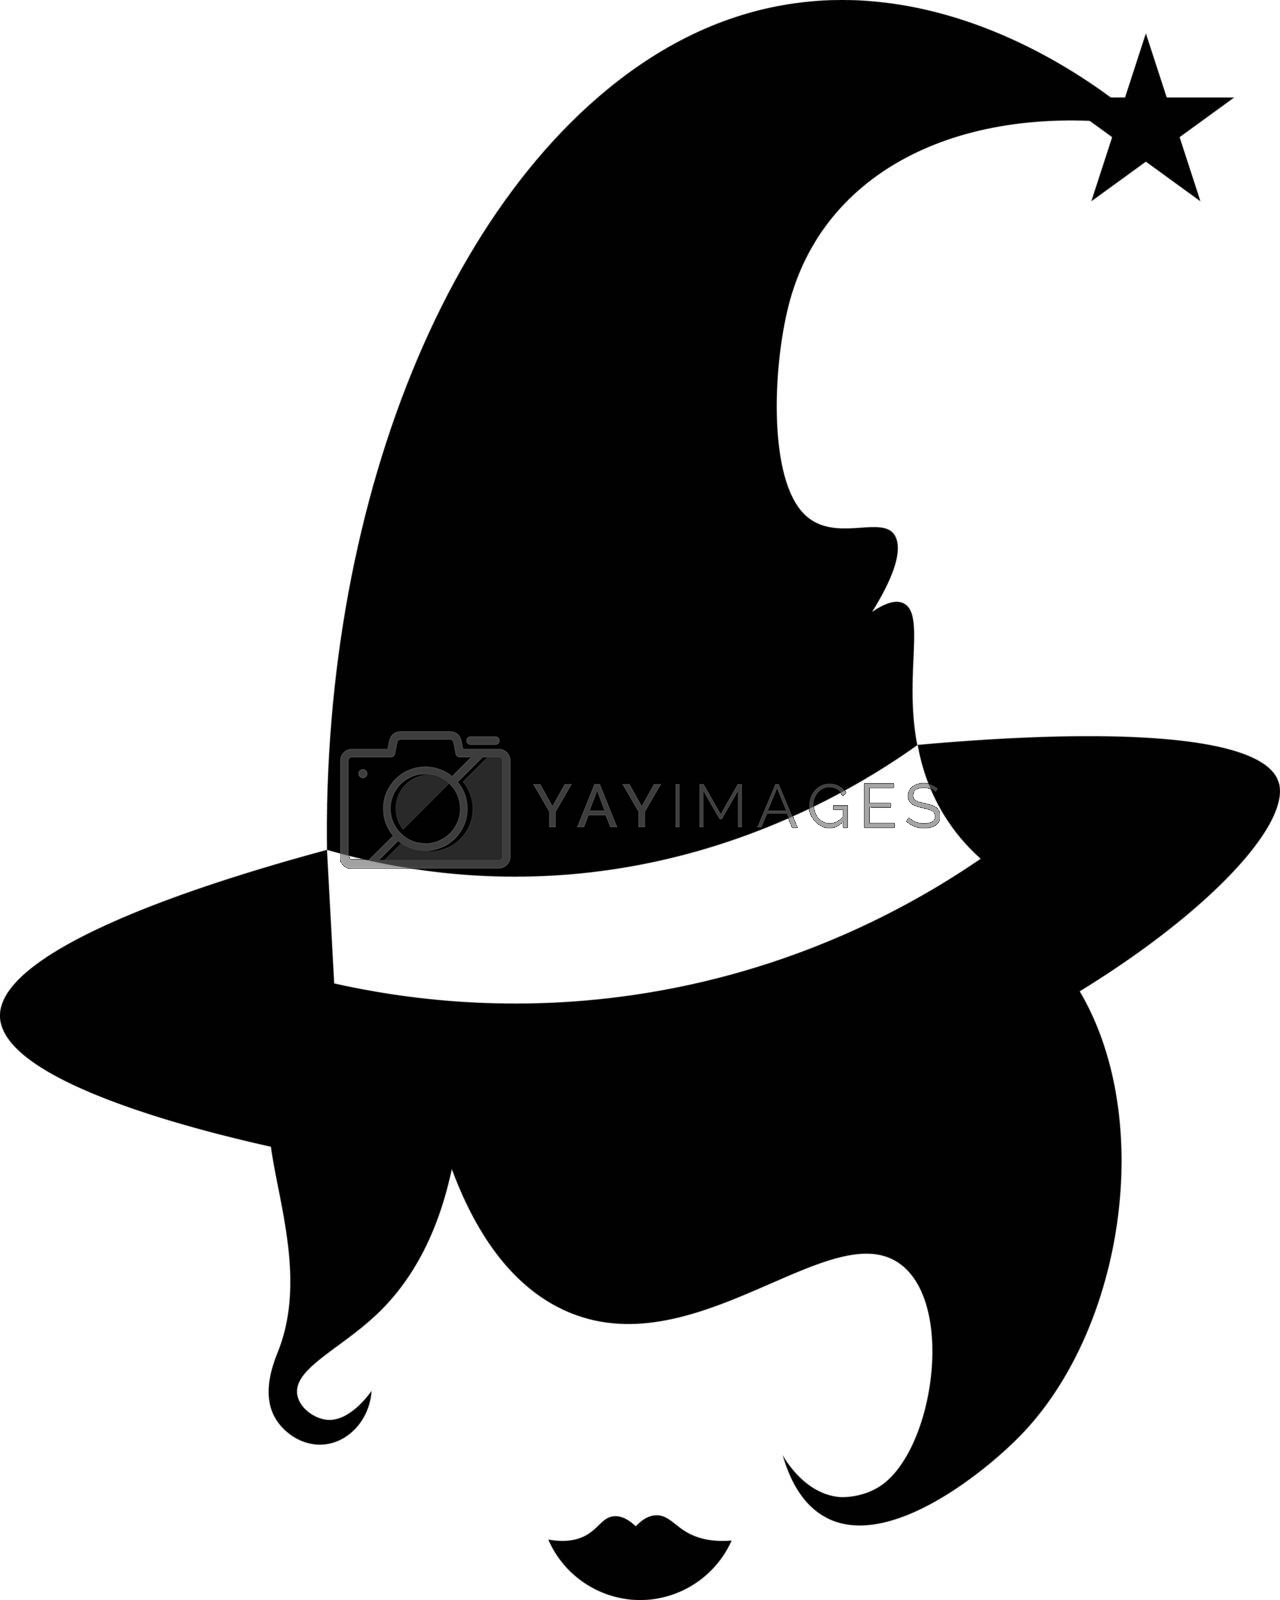 black an white stencil halloween illustration faceless witch head in hat